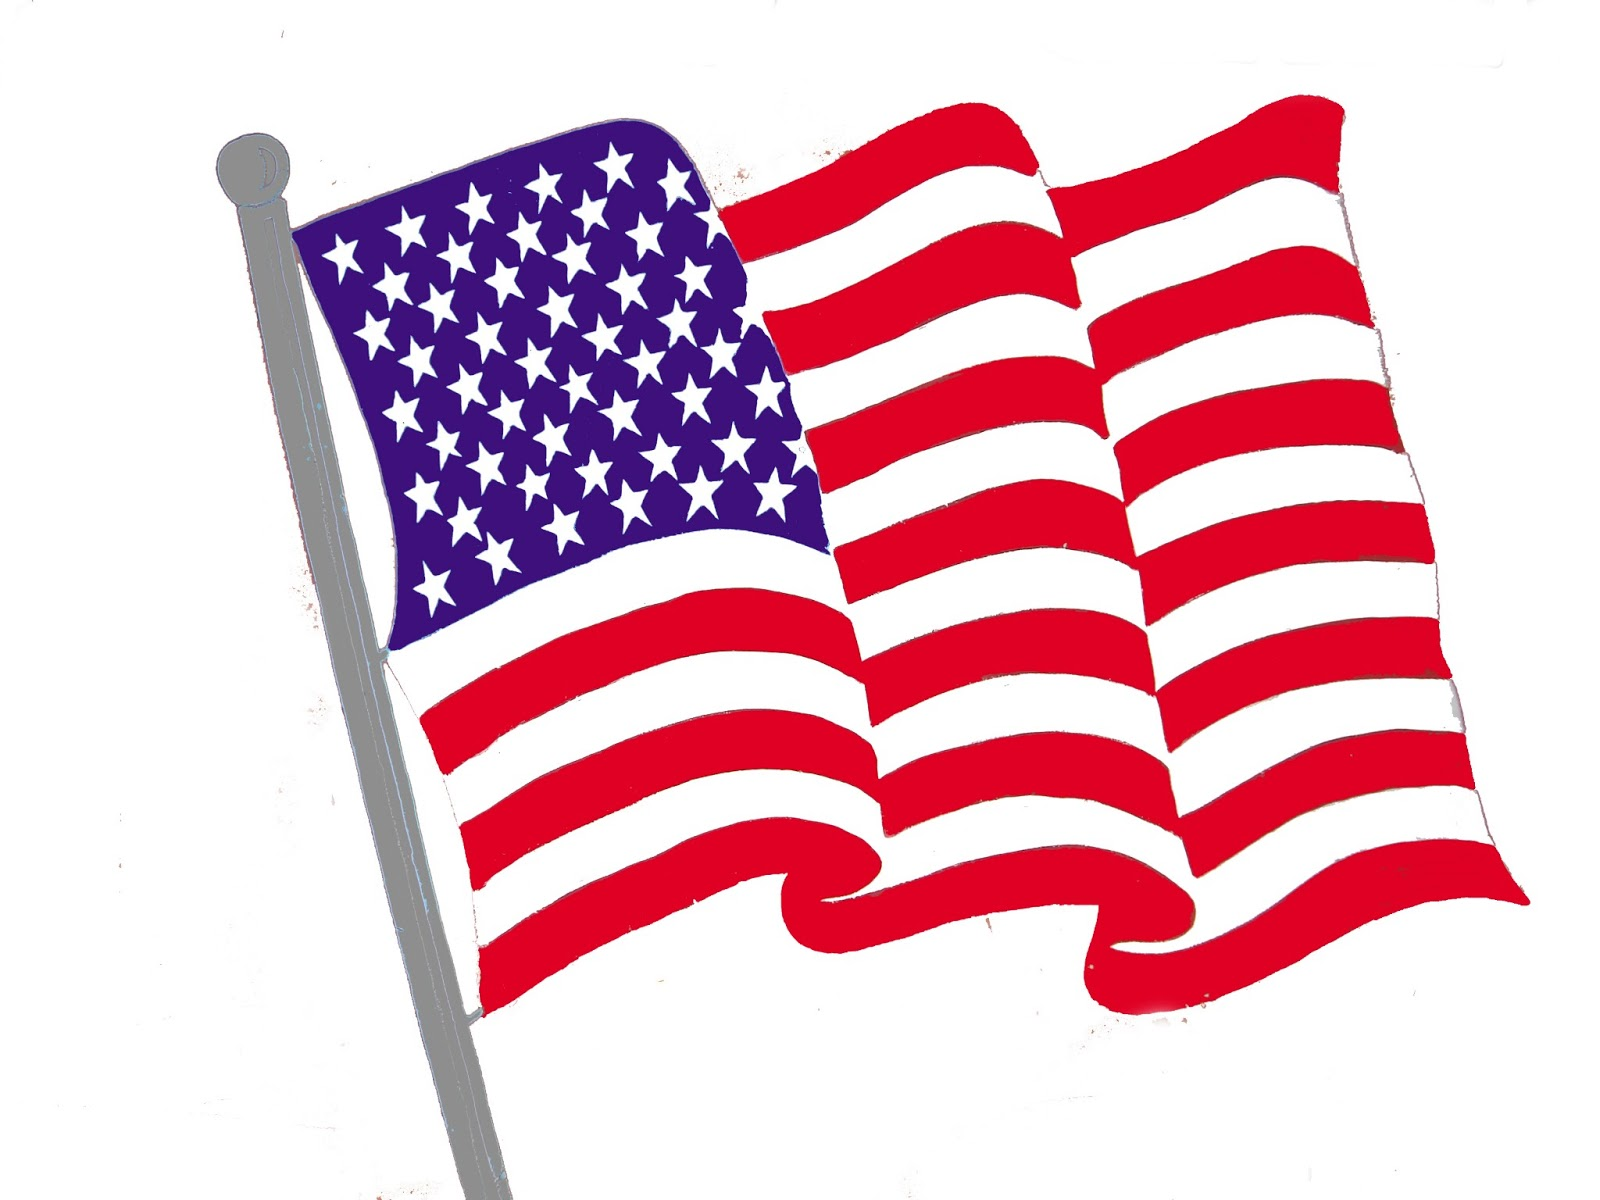 American Flag clipart #6, Download drawings